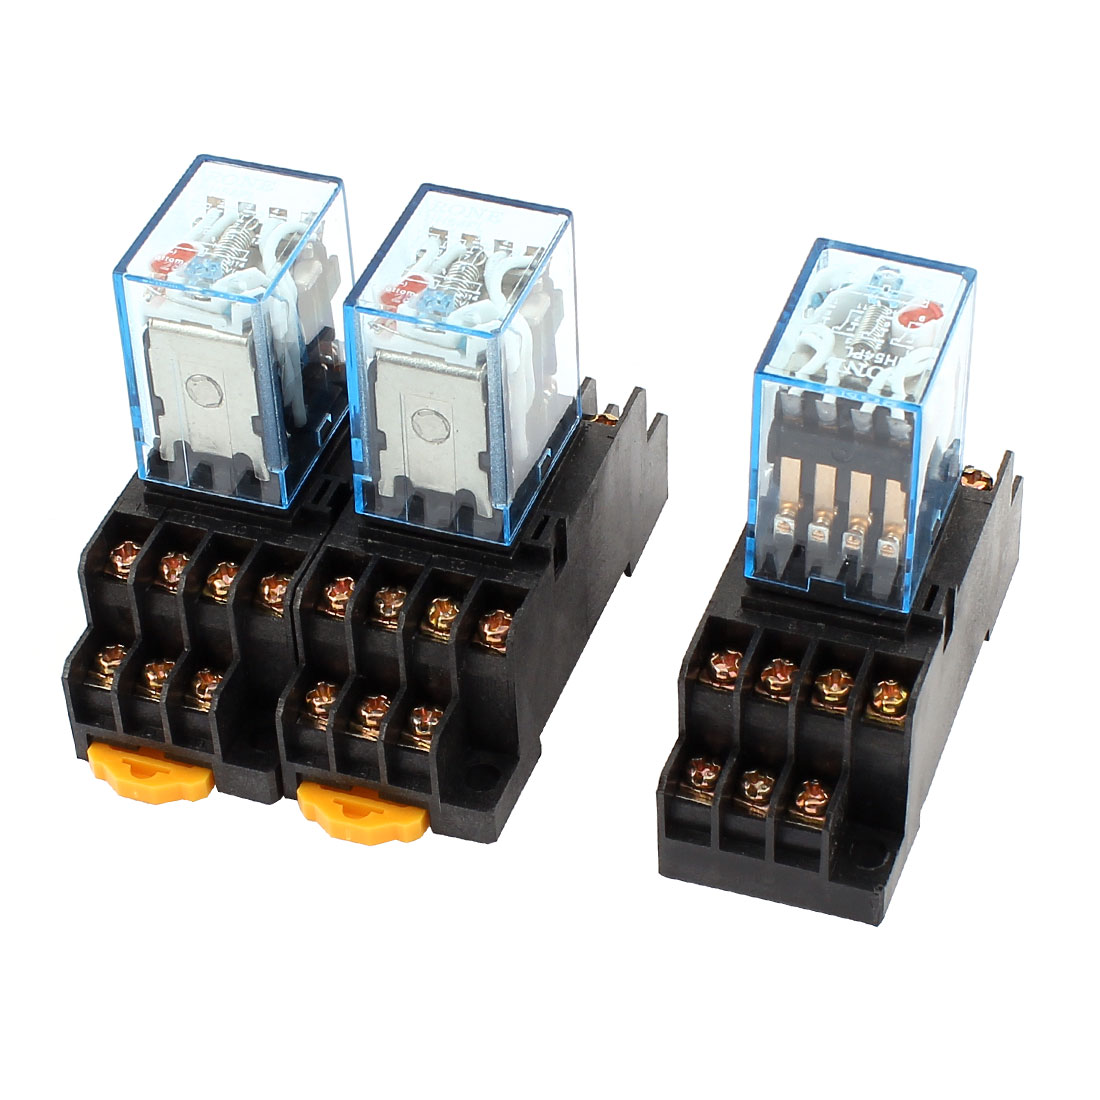 3 Pcs AC 110V Coil 14Pin 4PDT 35mm DIN Rail Electromagnetic Power Relay + Socket